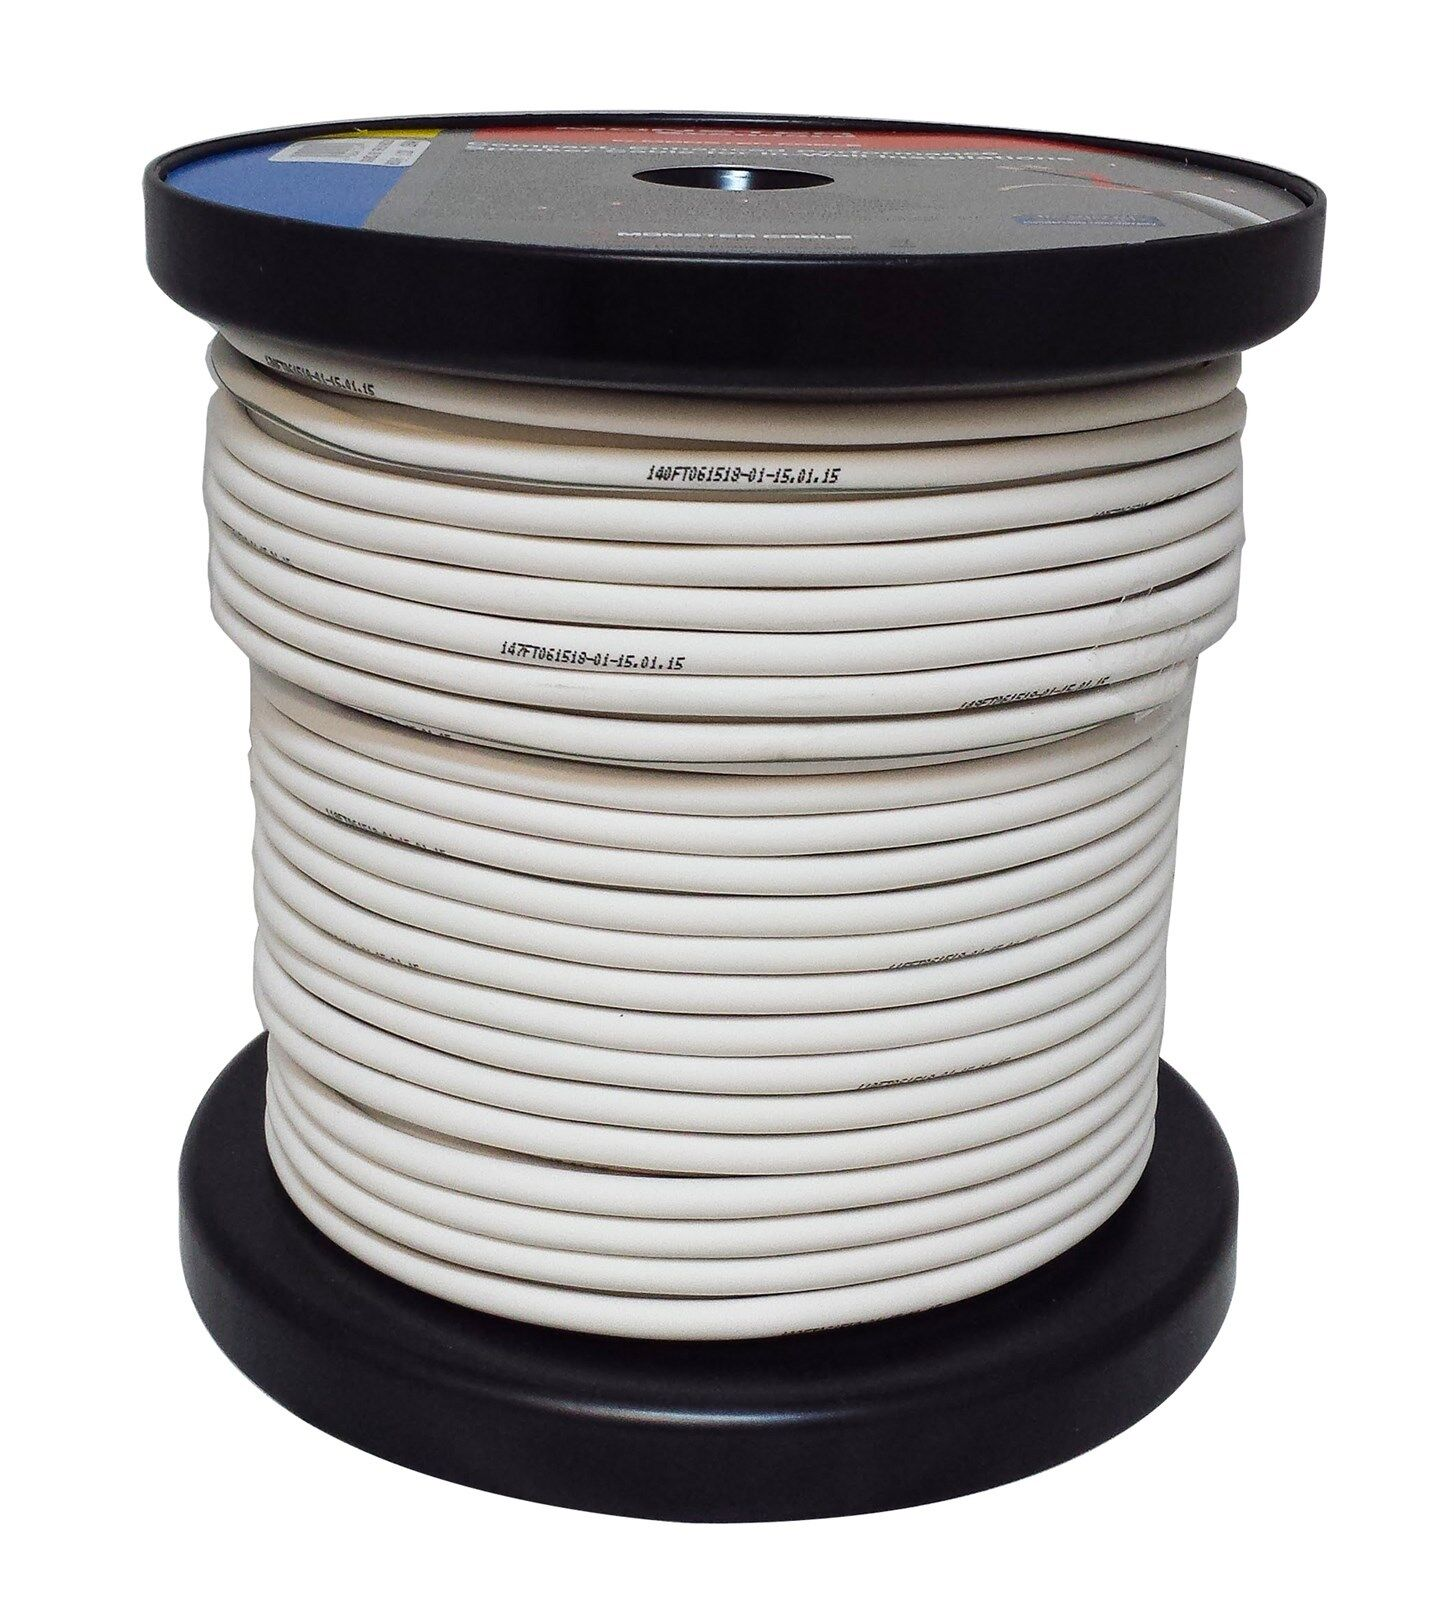 monster cable s16 2rcl speaker wire cl3 in wall rated 16 gauge 150 ft length 50644274985 ebay. Black Bedroom Furniture Sets. Home Design Ideas